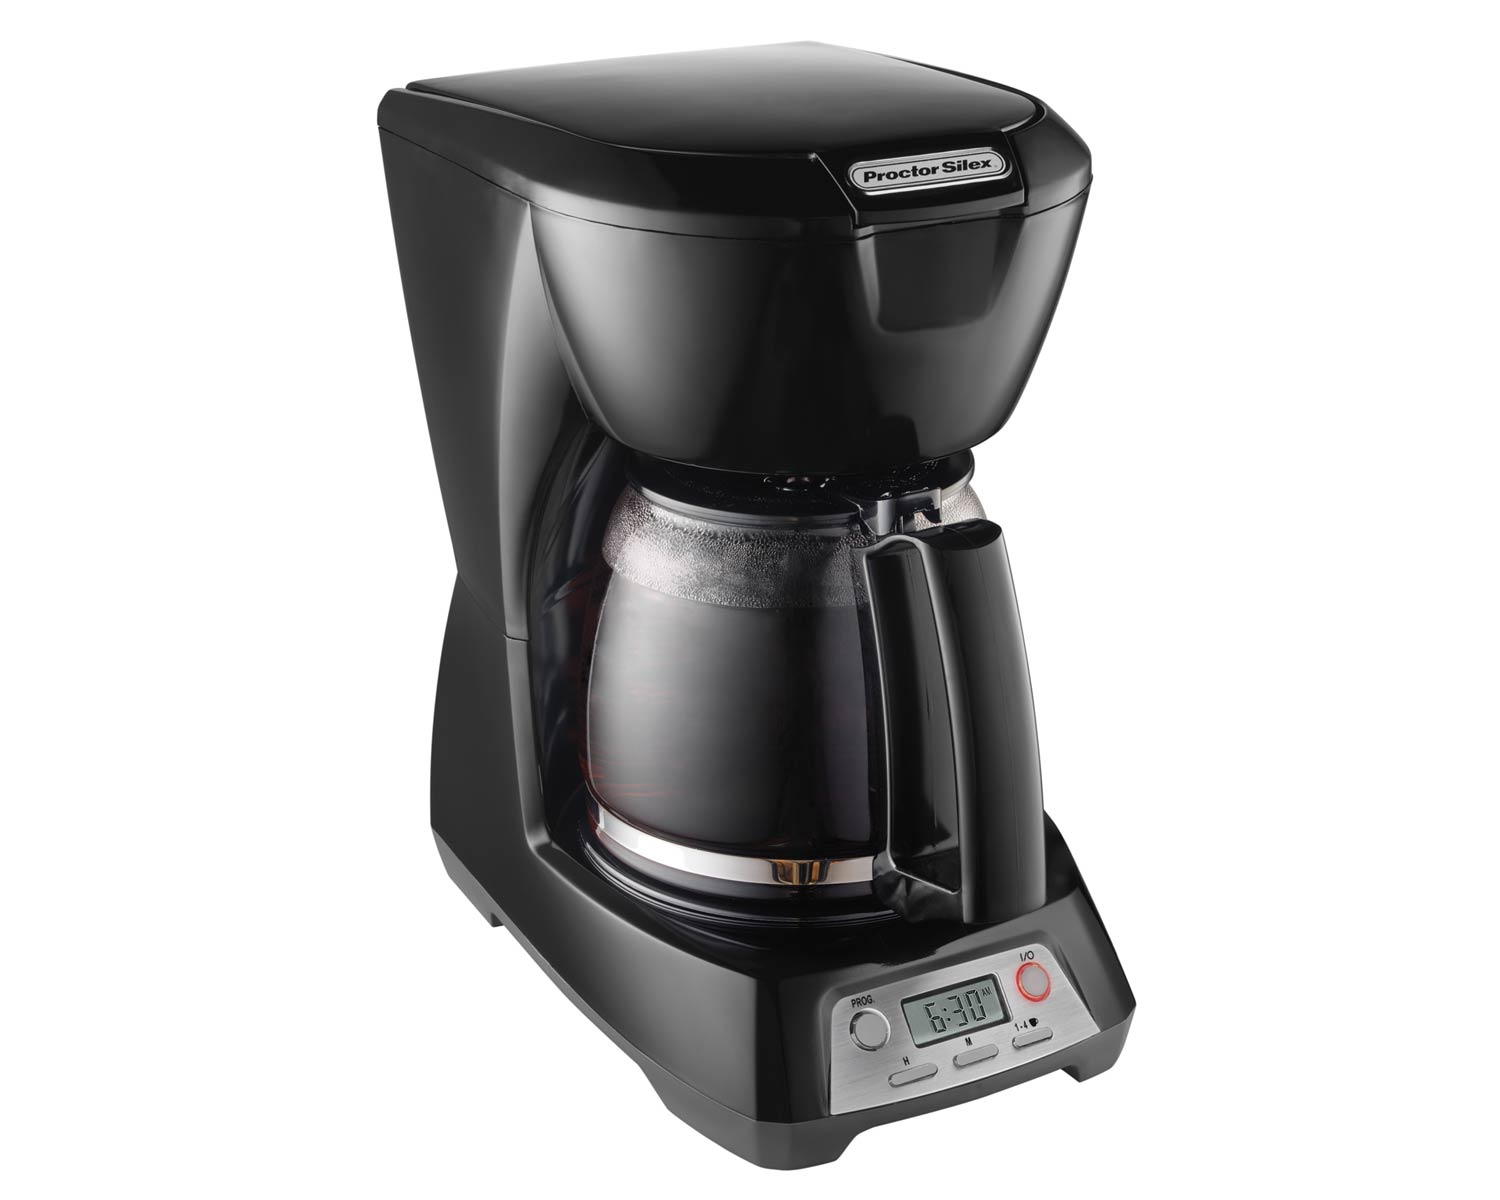 12 Cup programmable Coffee Maker - 43672